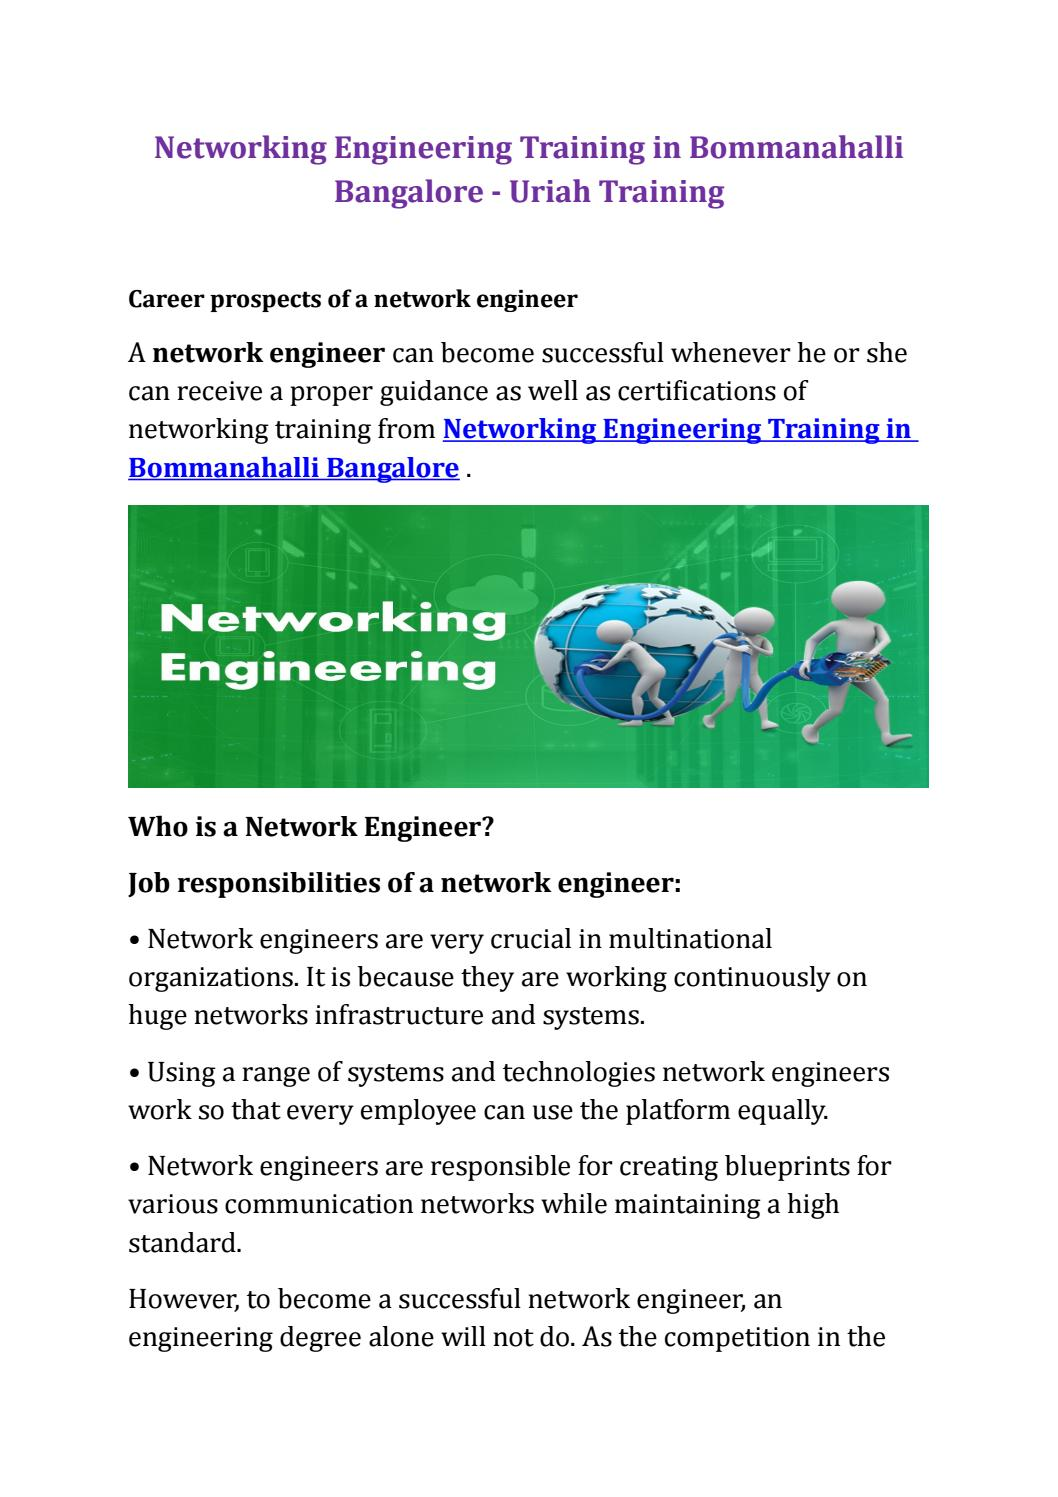 Networking Engineering Training In Bommanahalli Bangalore By